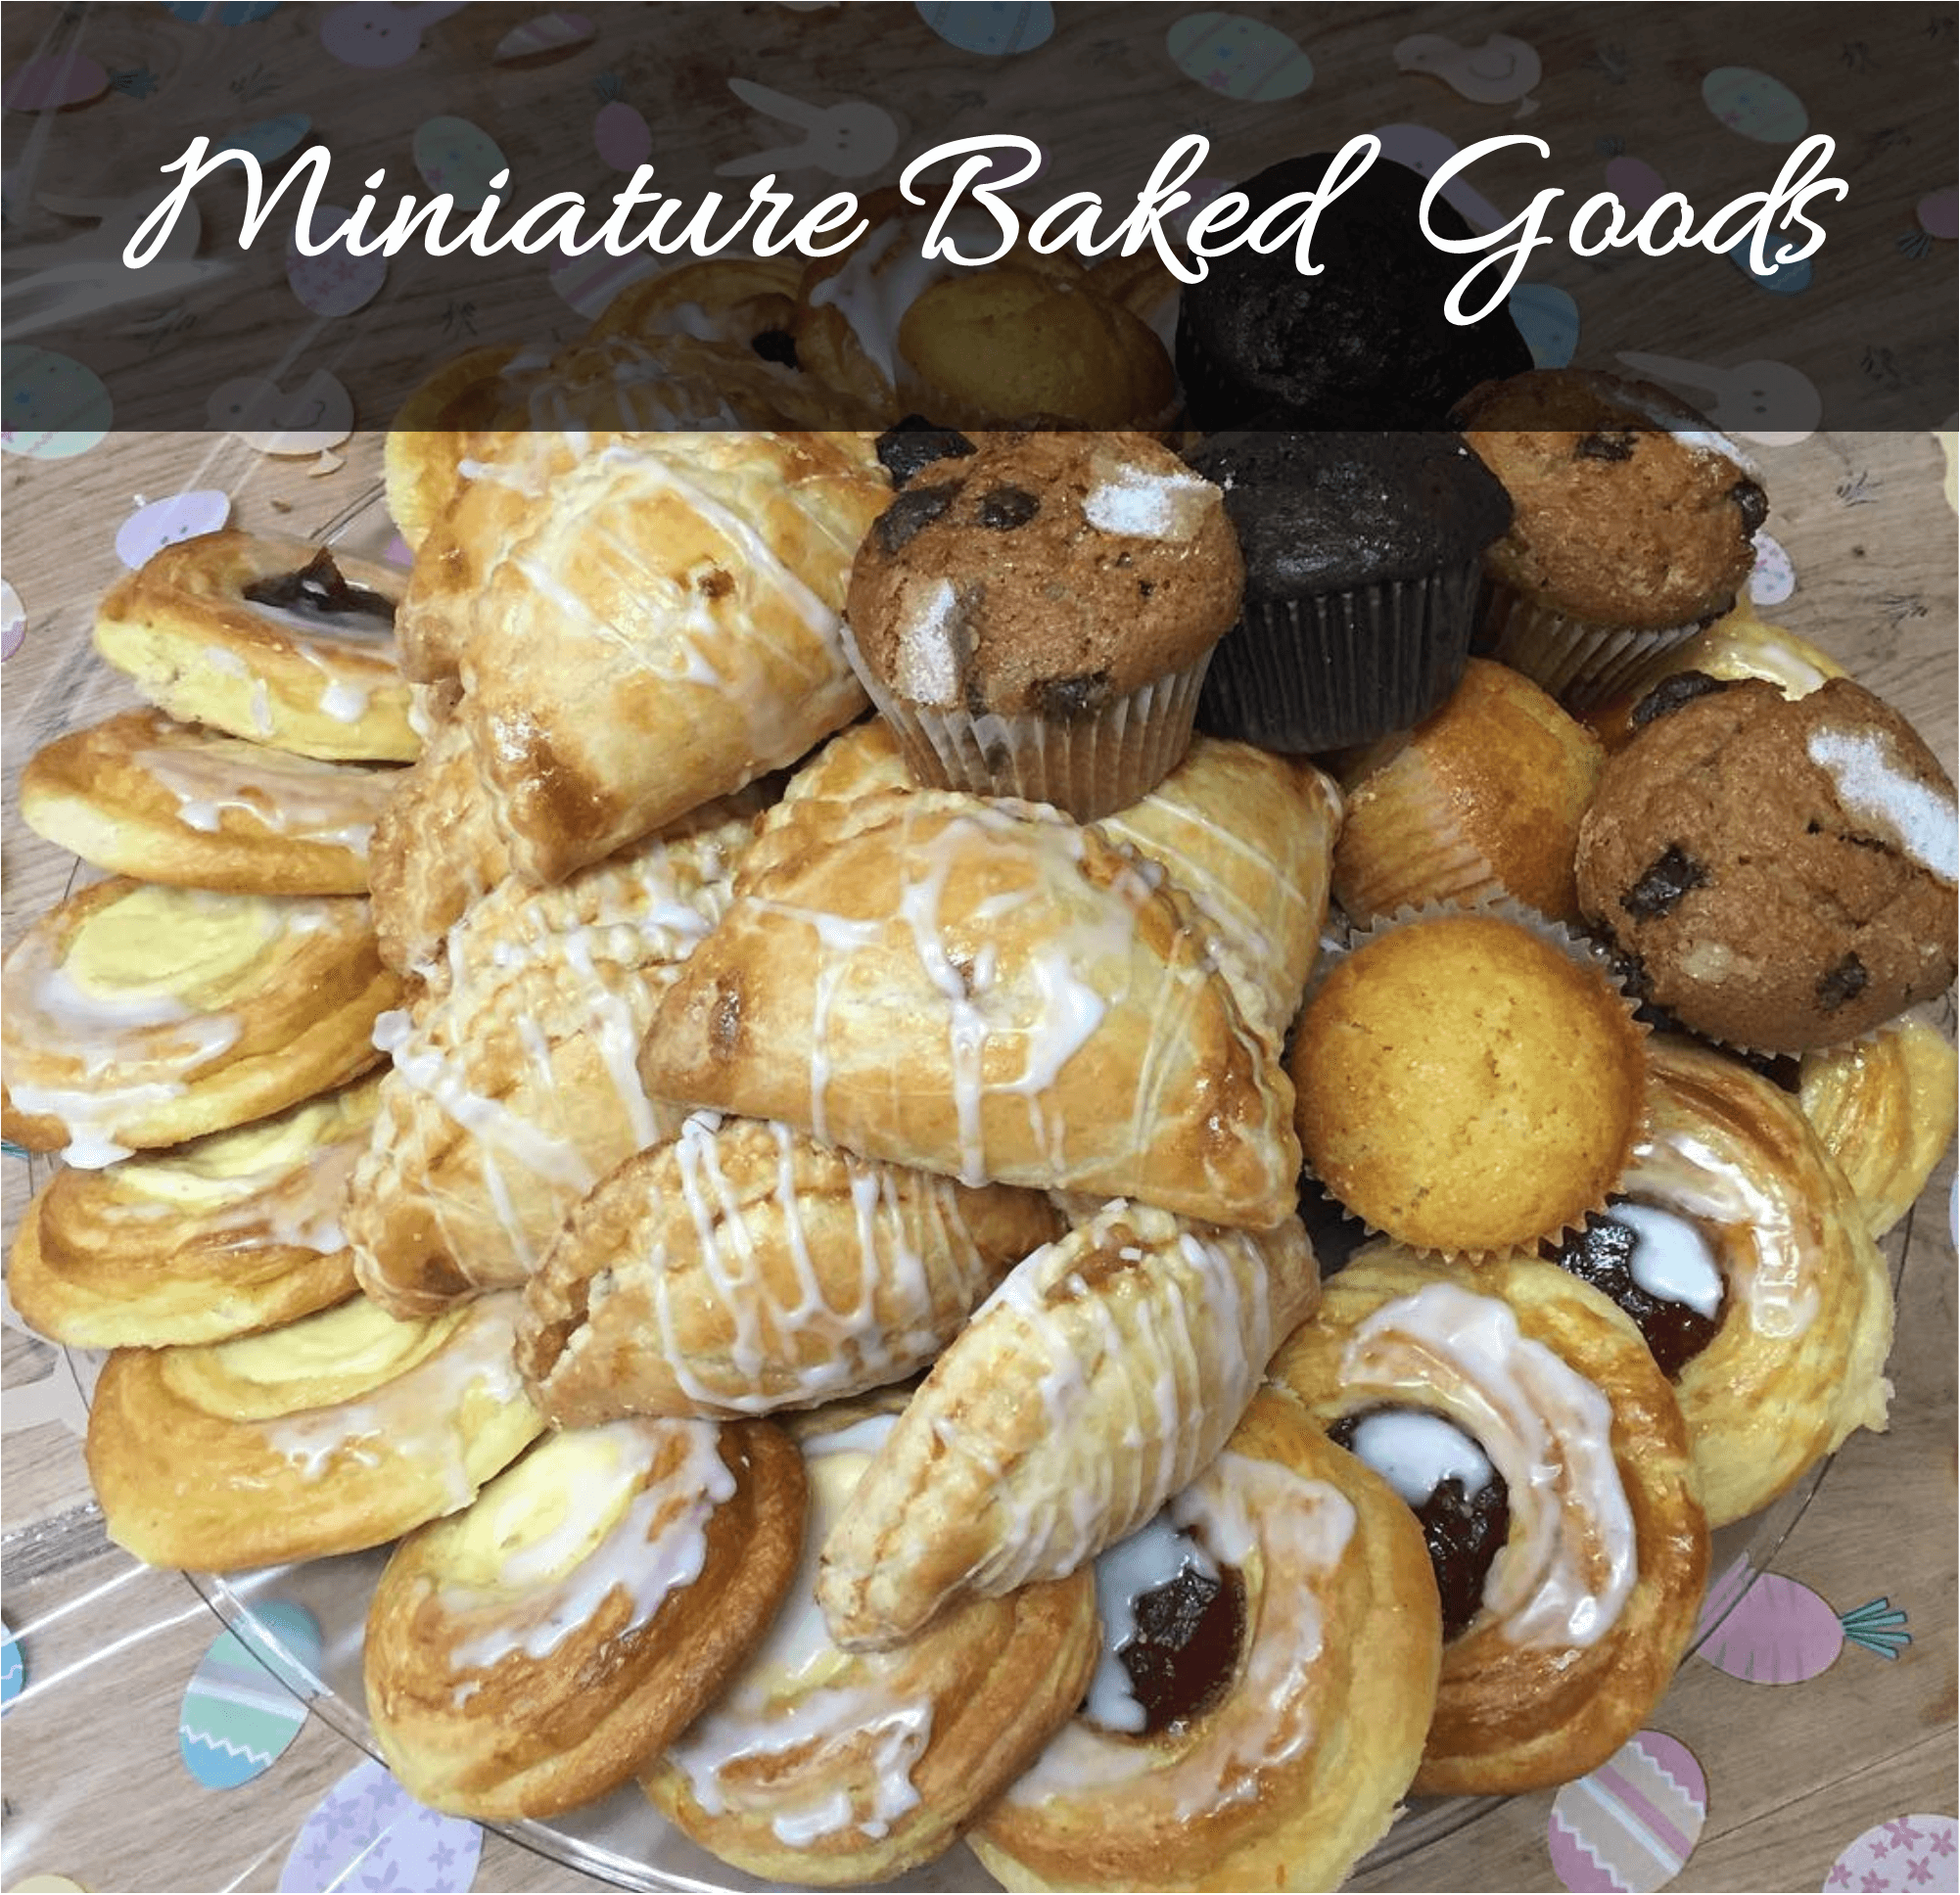 Catering_Menus - Miniature-Baked-Goods.png